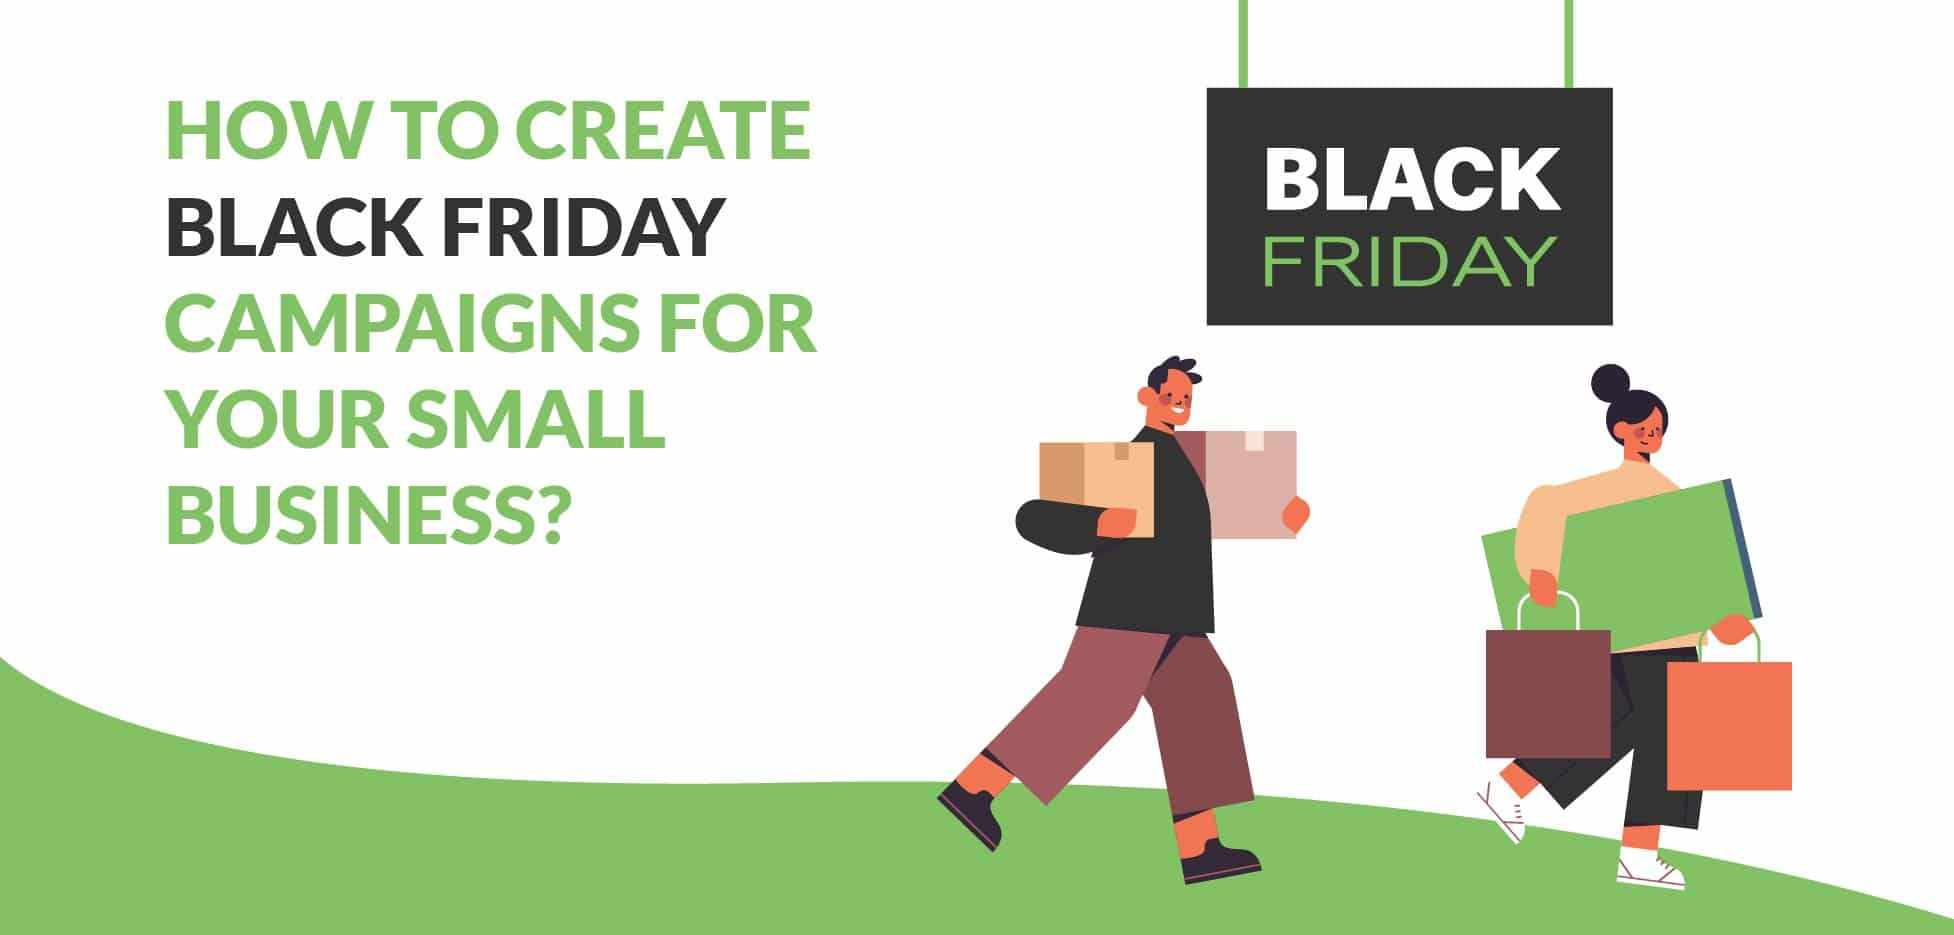 Black Friday Campaign for small businesses